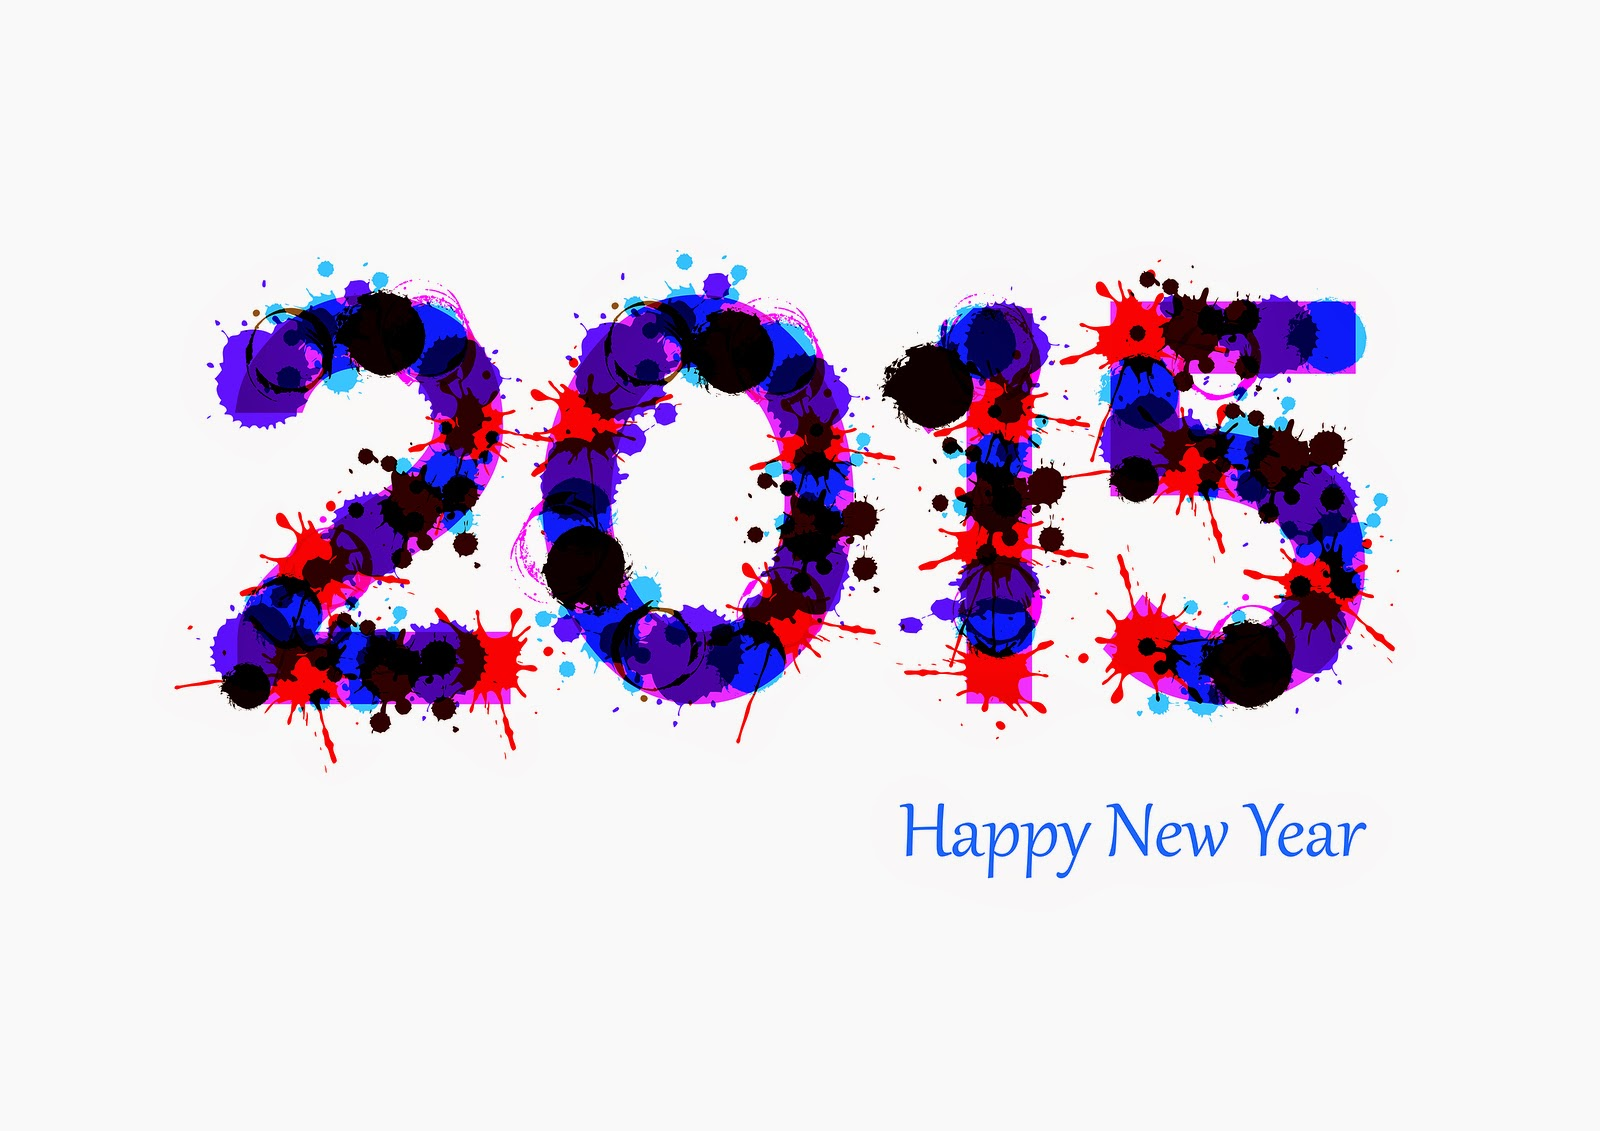 Happy New Year wishes Quotes Images - Happy New Year 2015